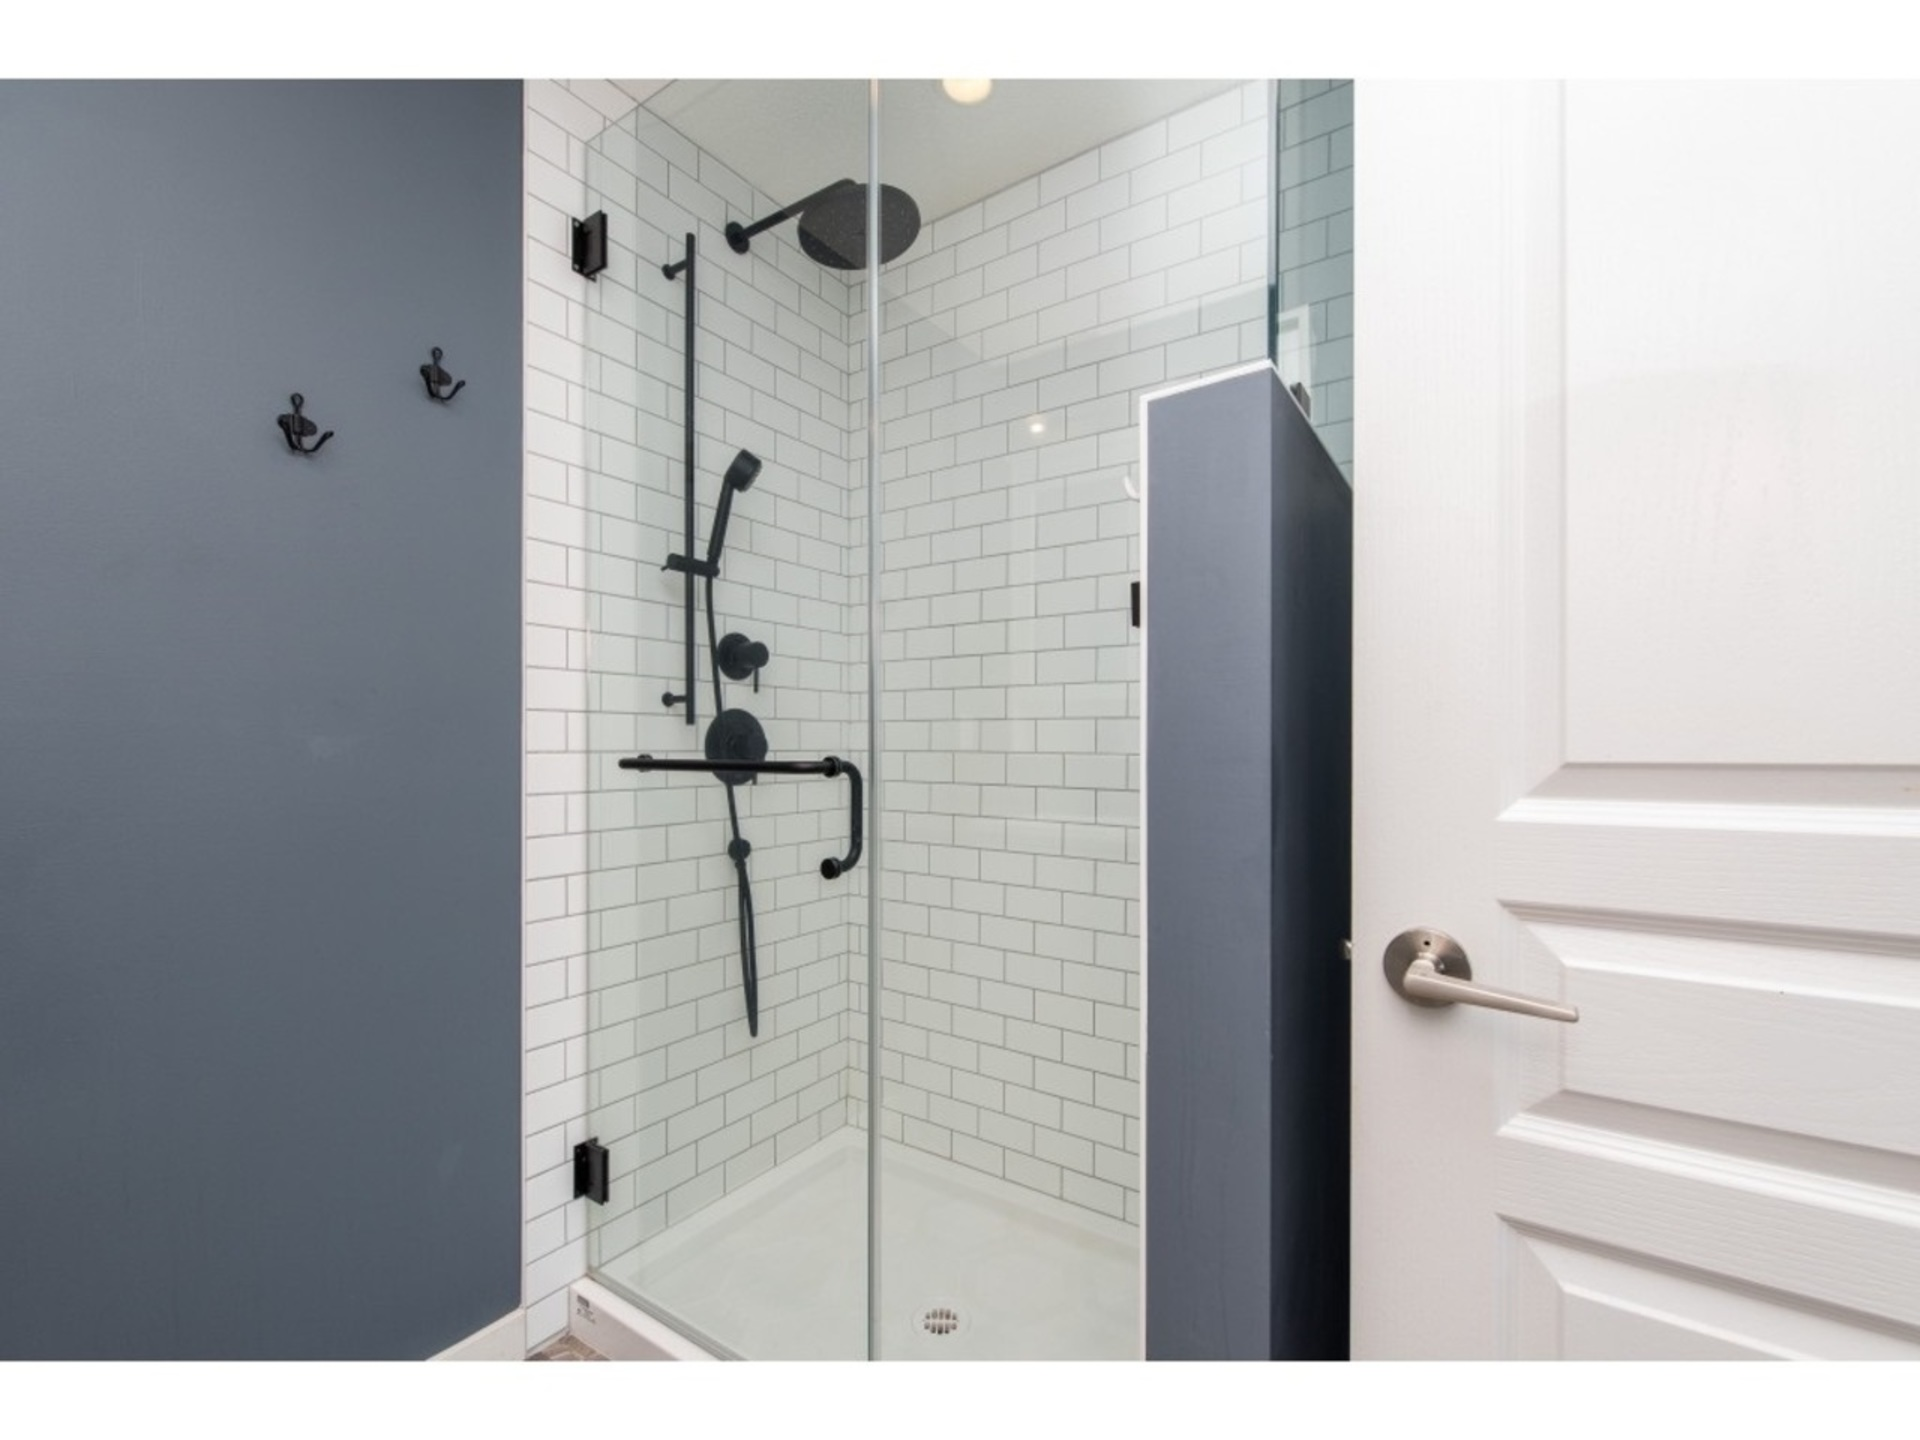 Ensuite shower with all new glass, tile and matte black fixtures at 94 - 30989 Westridge Place, Abbotsford West, Abbotsford